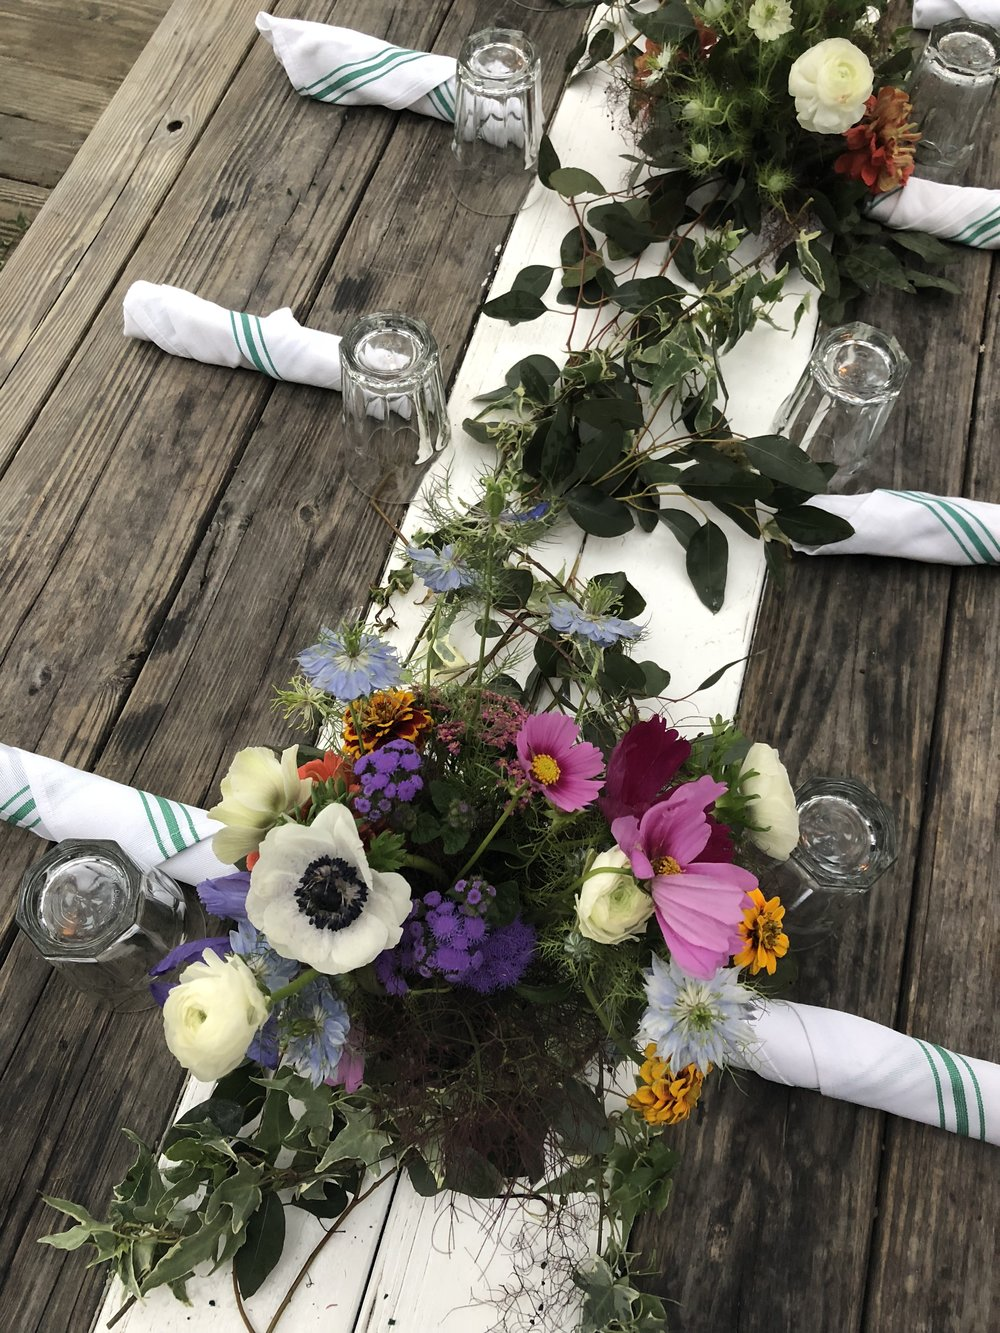 Swedish midsummer at the Surf Lodge